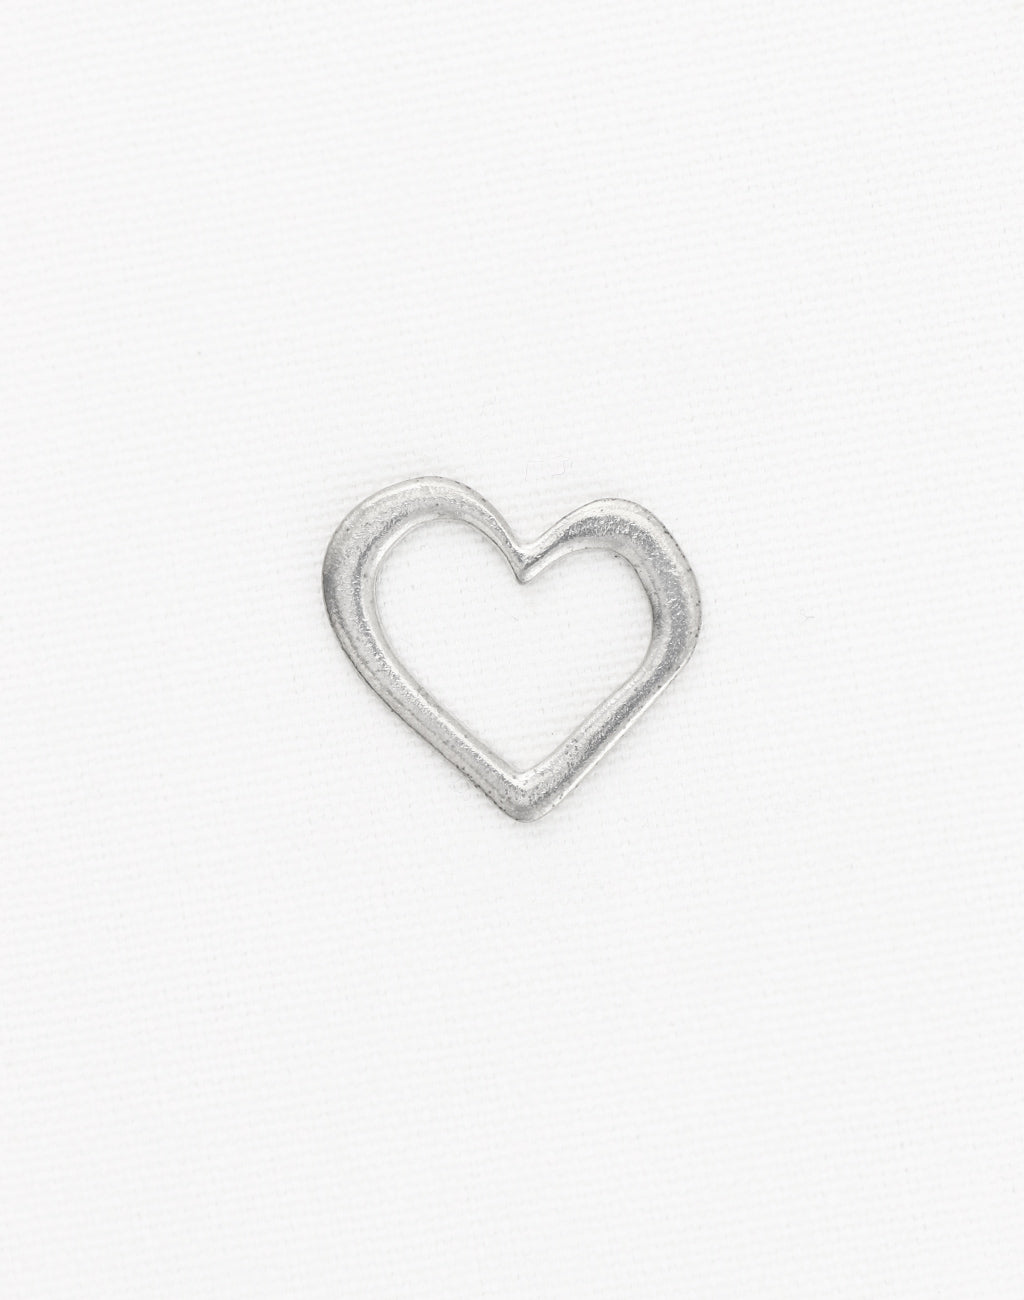 Heart Ring, 22x23mm, (1pc)